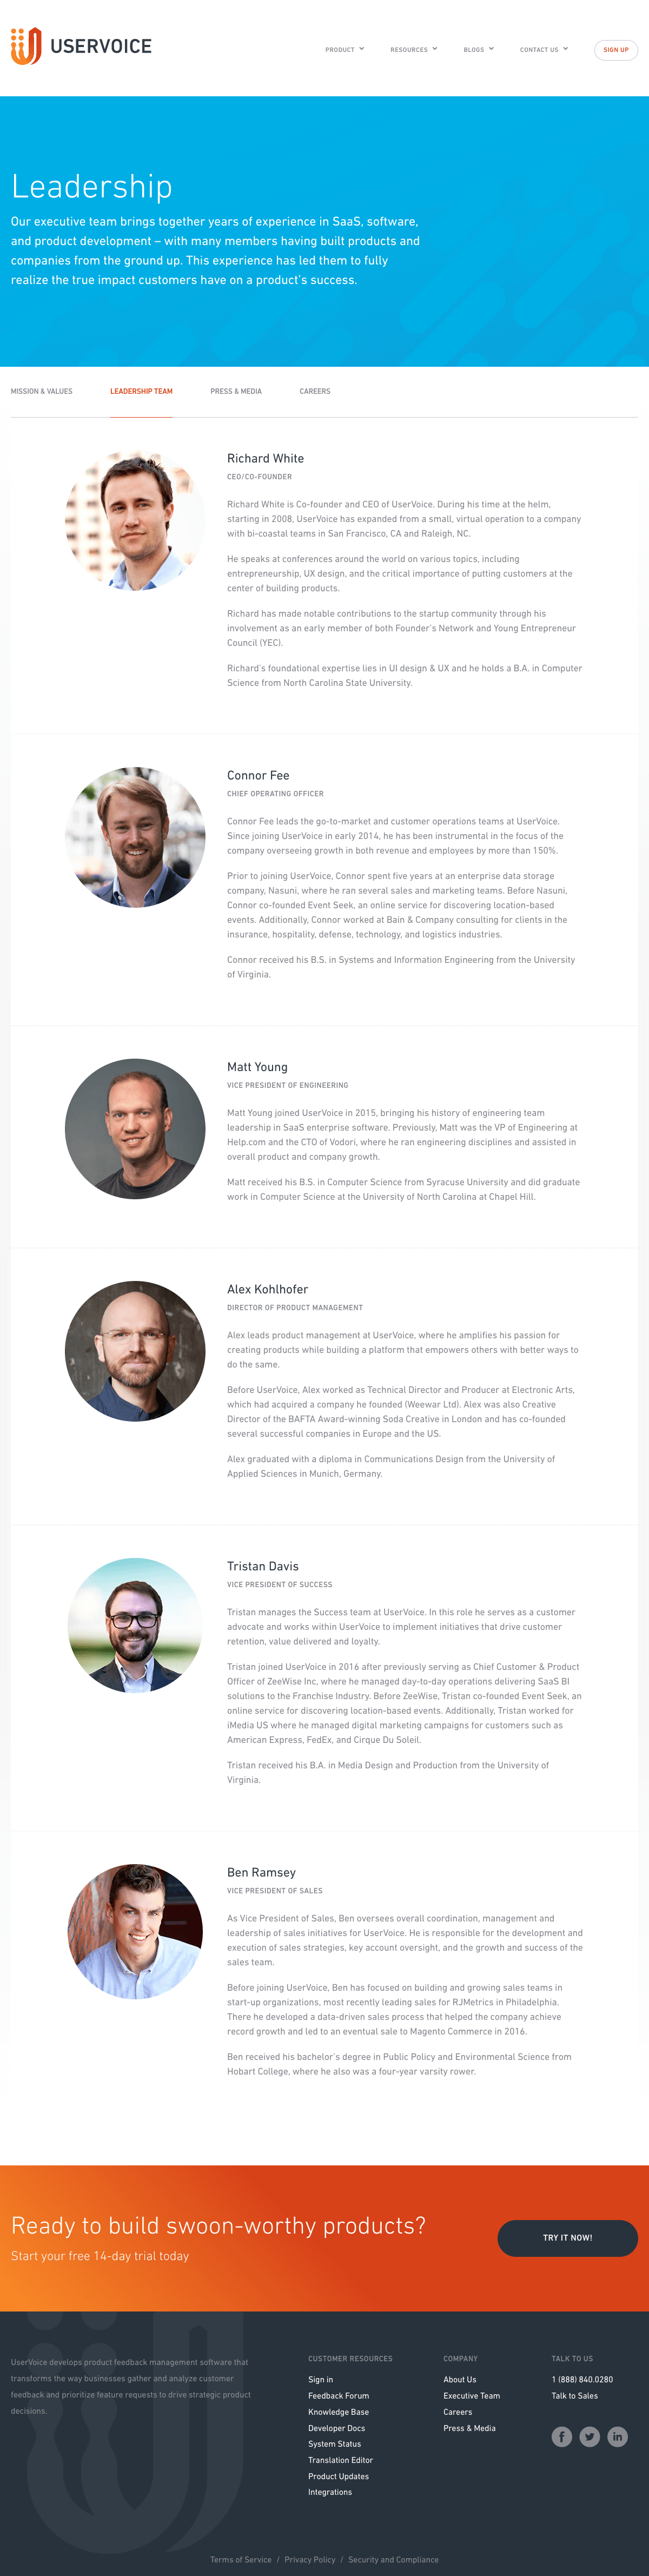 team page inspiration - saas UserVoice